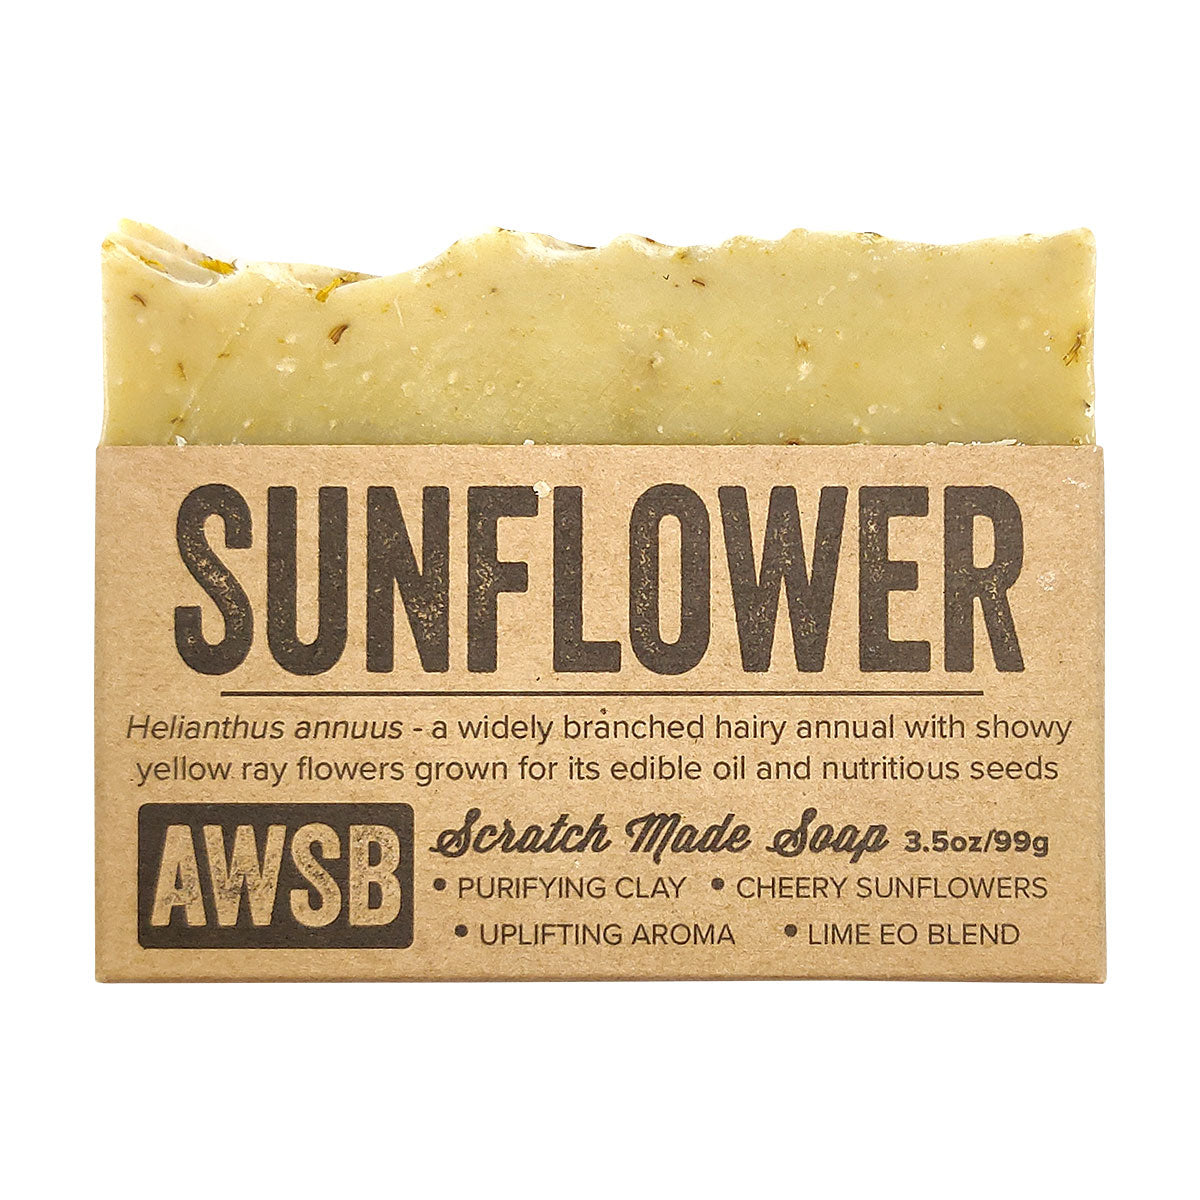 Sunflower Soap for sale, Organic Soap Bar, Natural Skin Care, Homemade Soap Bar, Raw Vegan Soap Bar, Body Soap Bar, Orange Soap Bar, Gift for Her